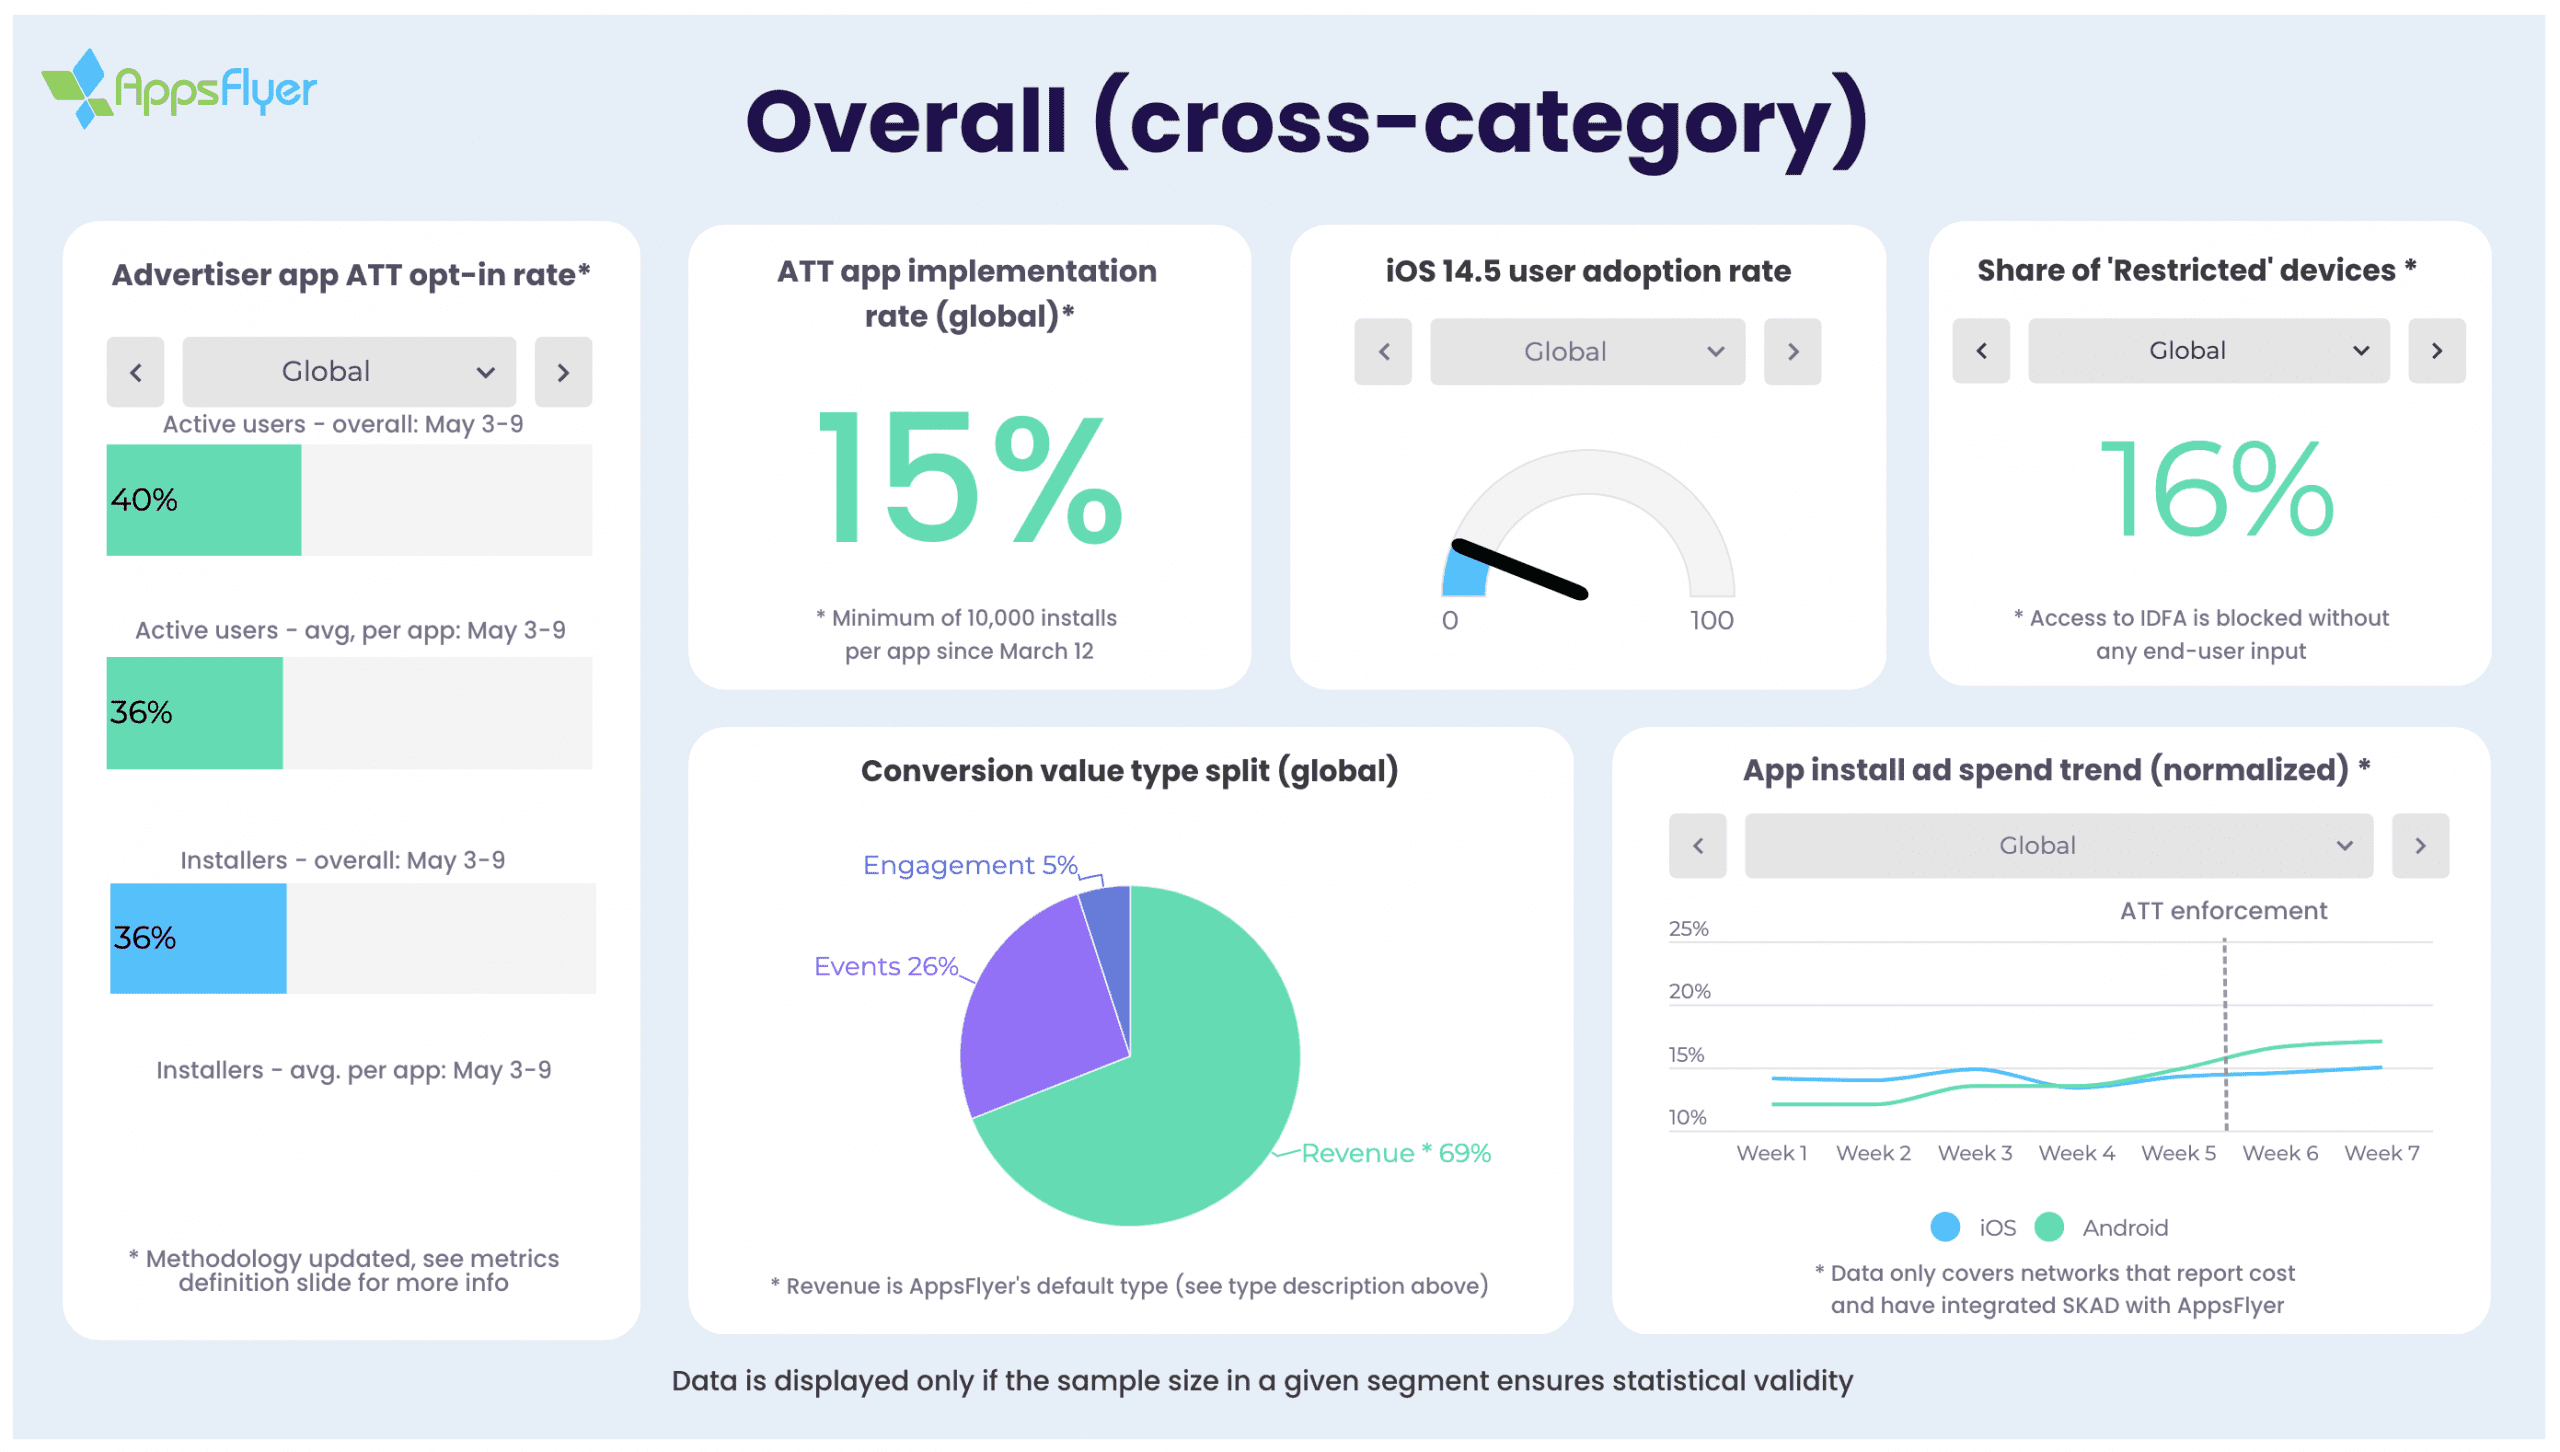 Overall cross-category ATT opt-in rates, as per AppsFlyer